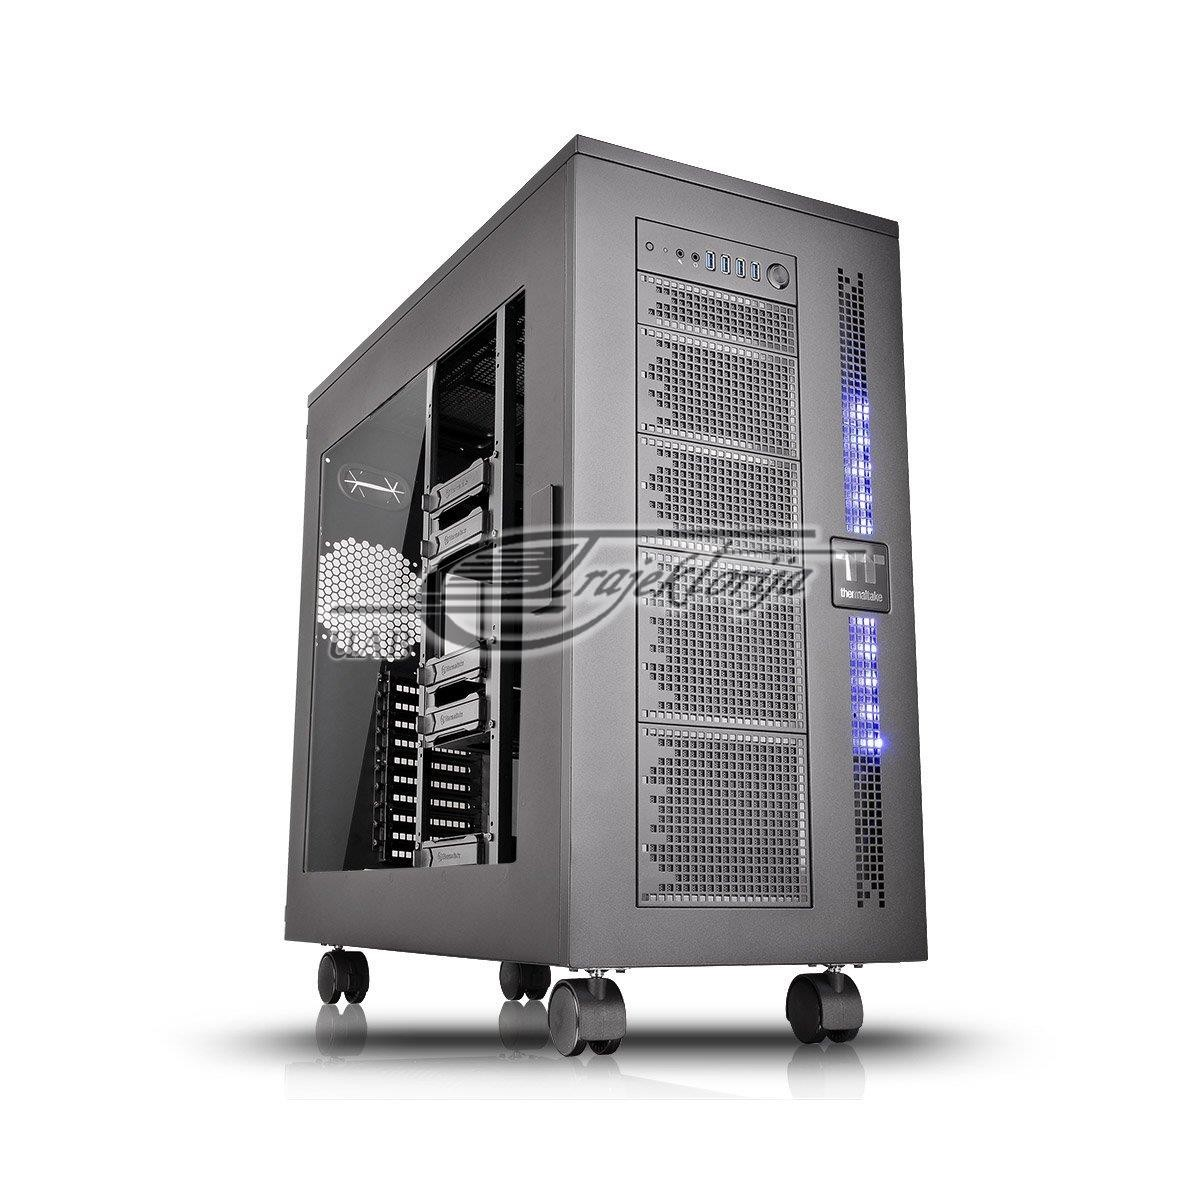 Thermaltake Core W100 Super Tower Chassis